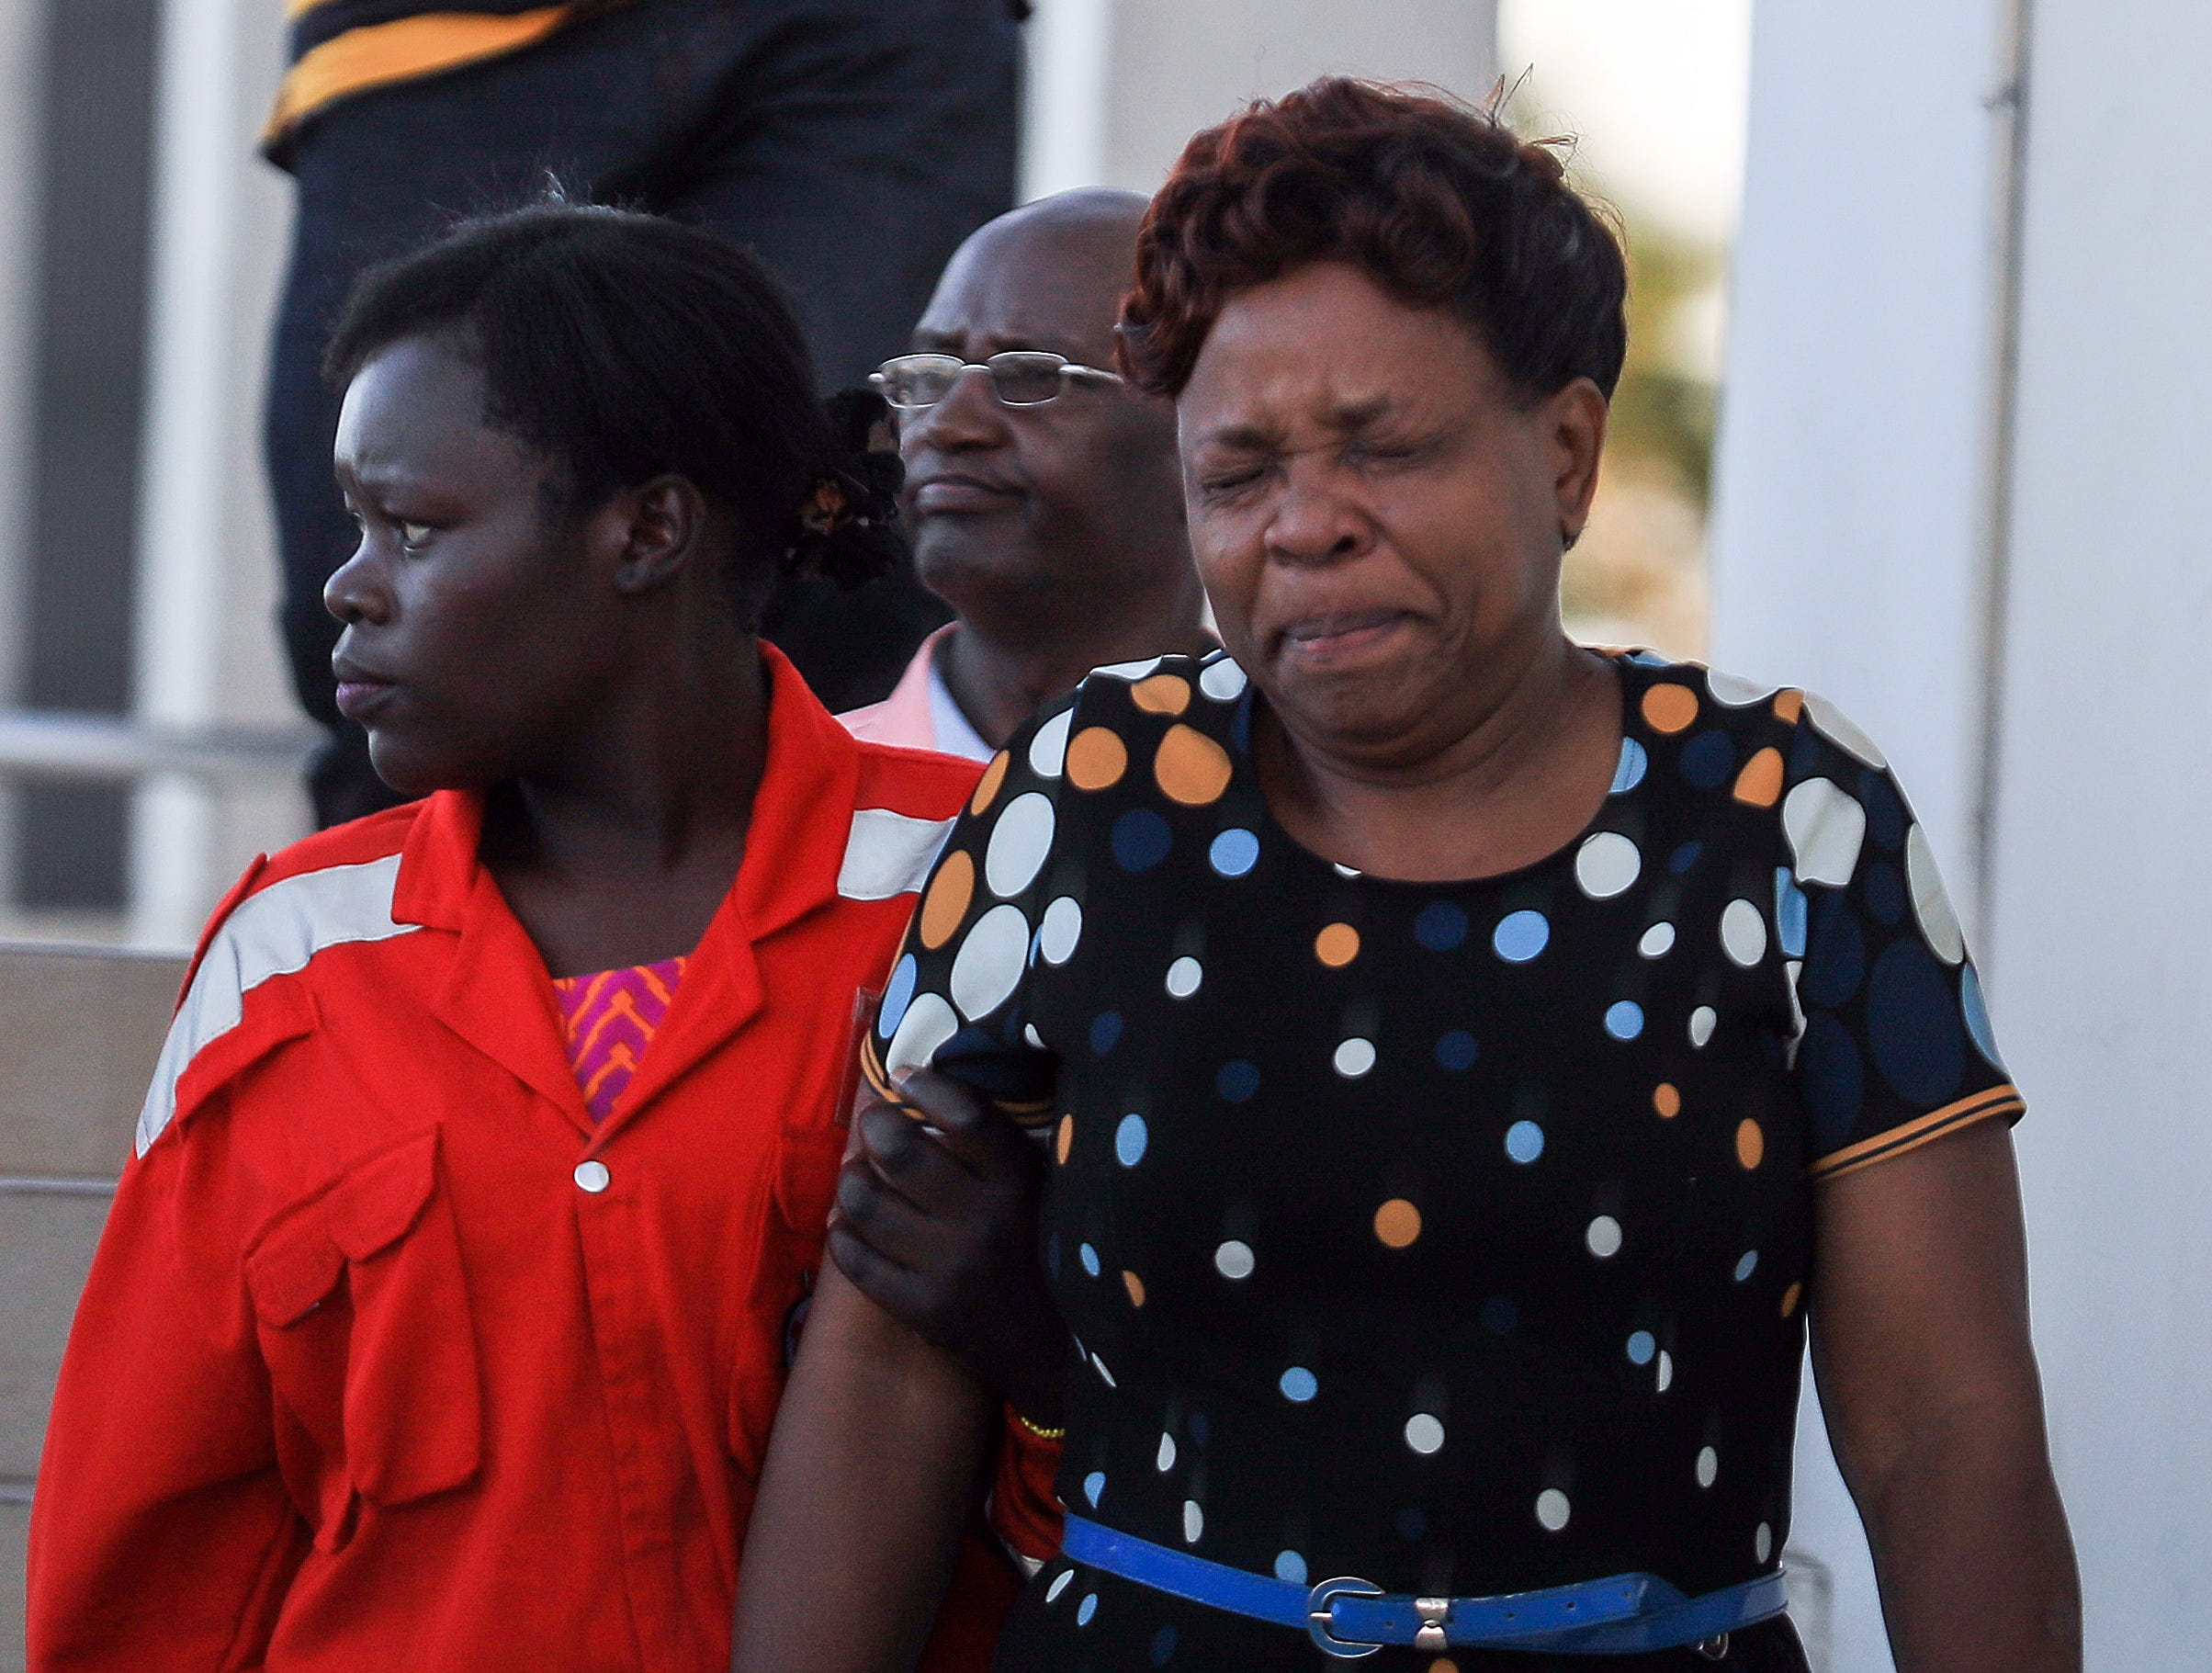 A Kenyan woman, right, is comforted by a Red Cross worker at Jomo Kenyatta International Airport (JKIA) in Nairobi, Kenya after getting information about her loved ones that were on board the Ethiopian Airlines plane that crashed.